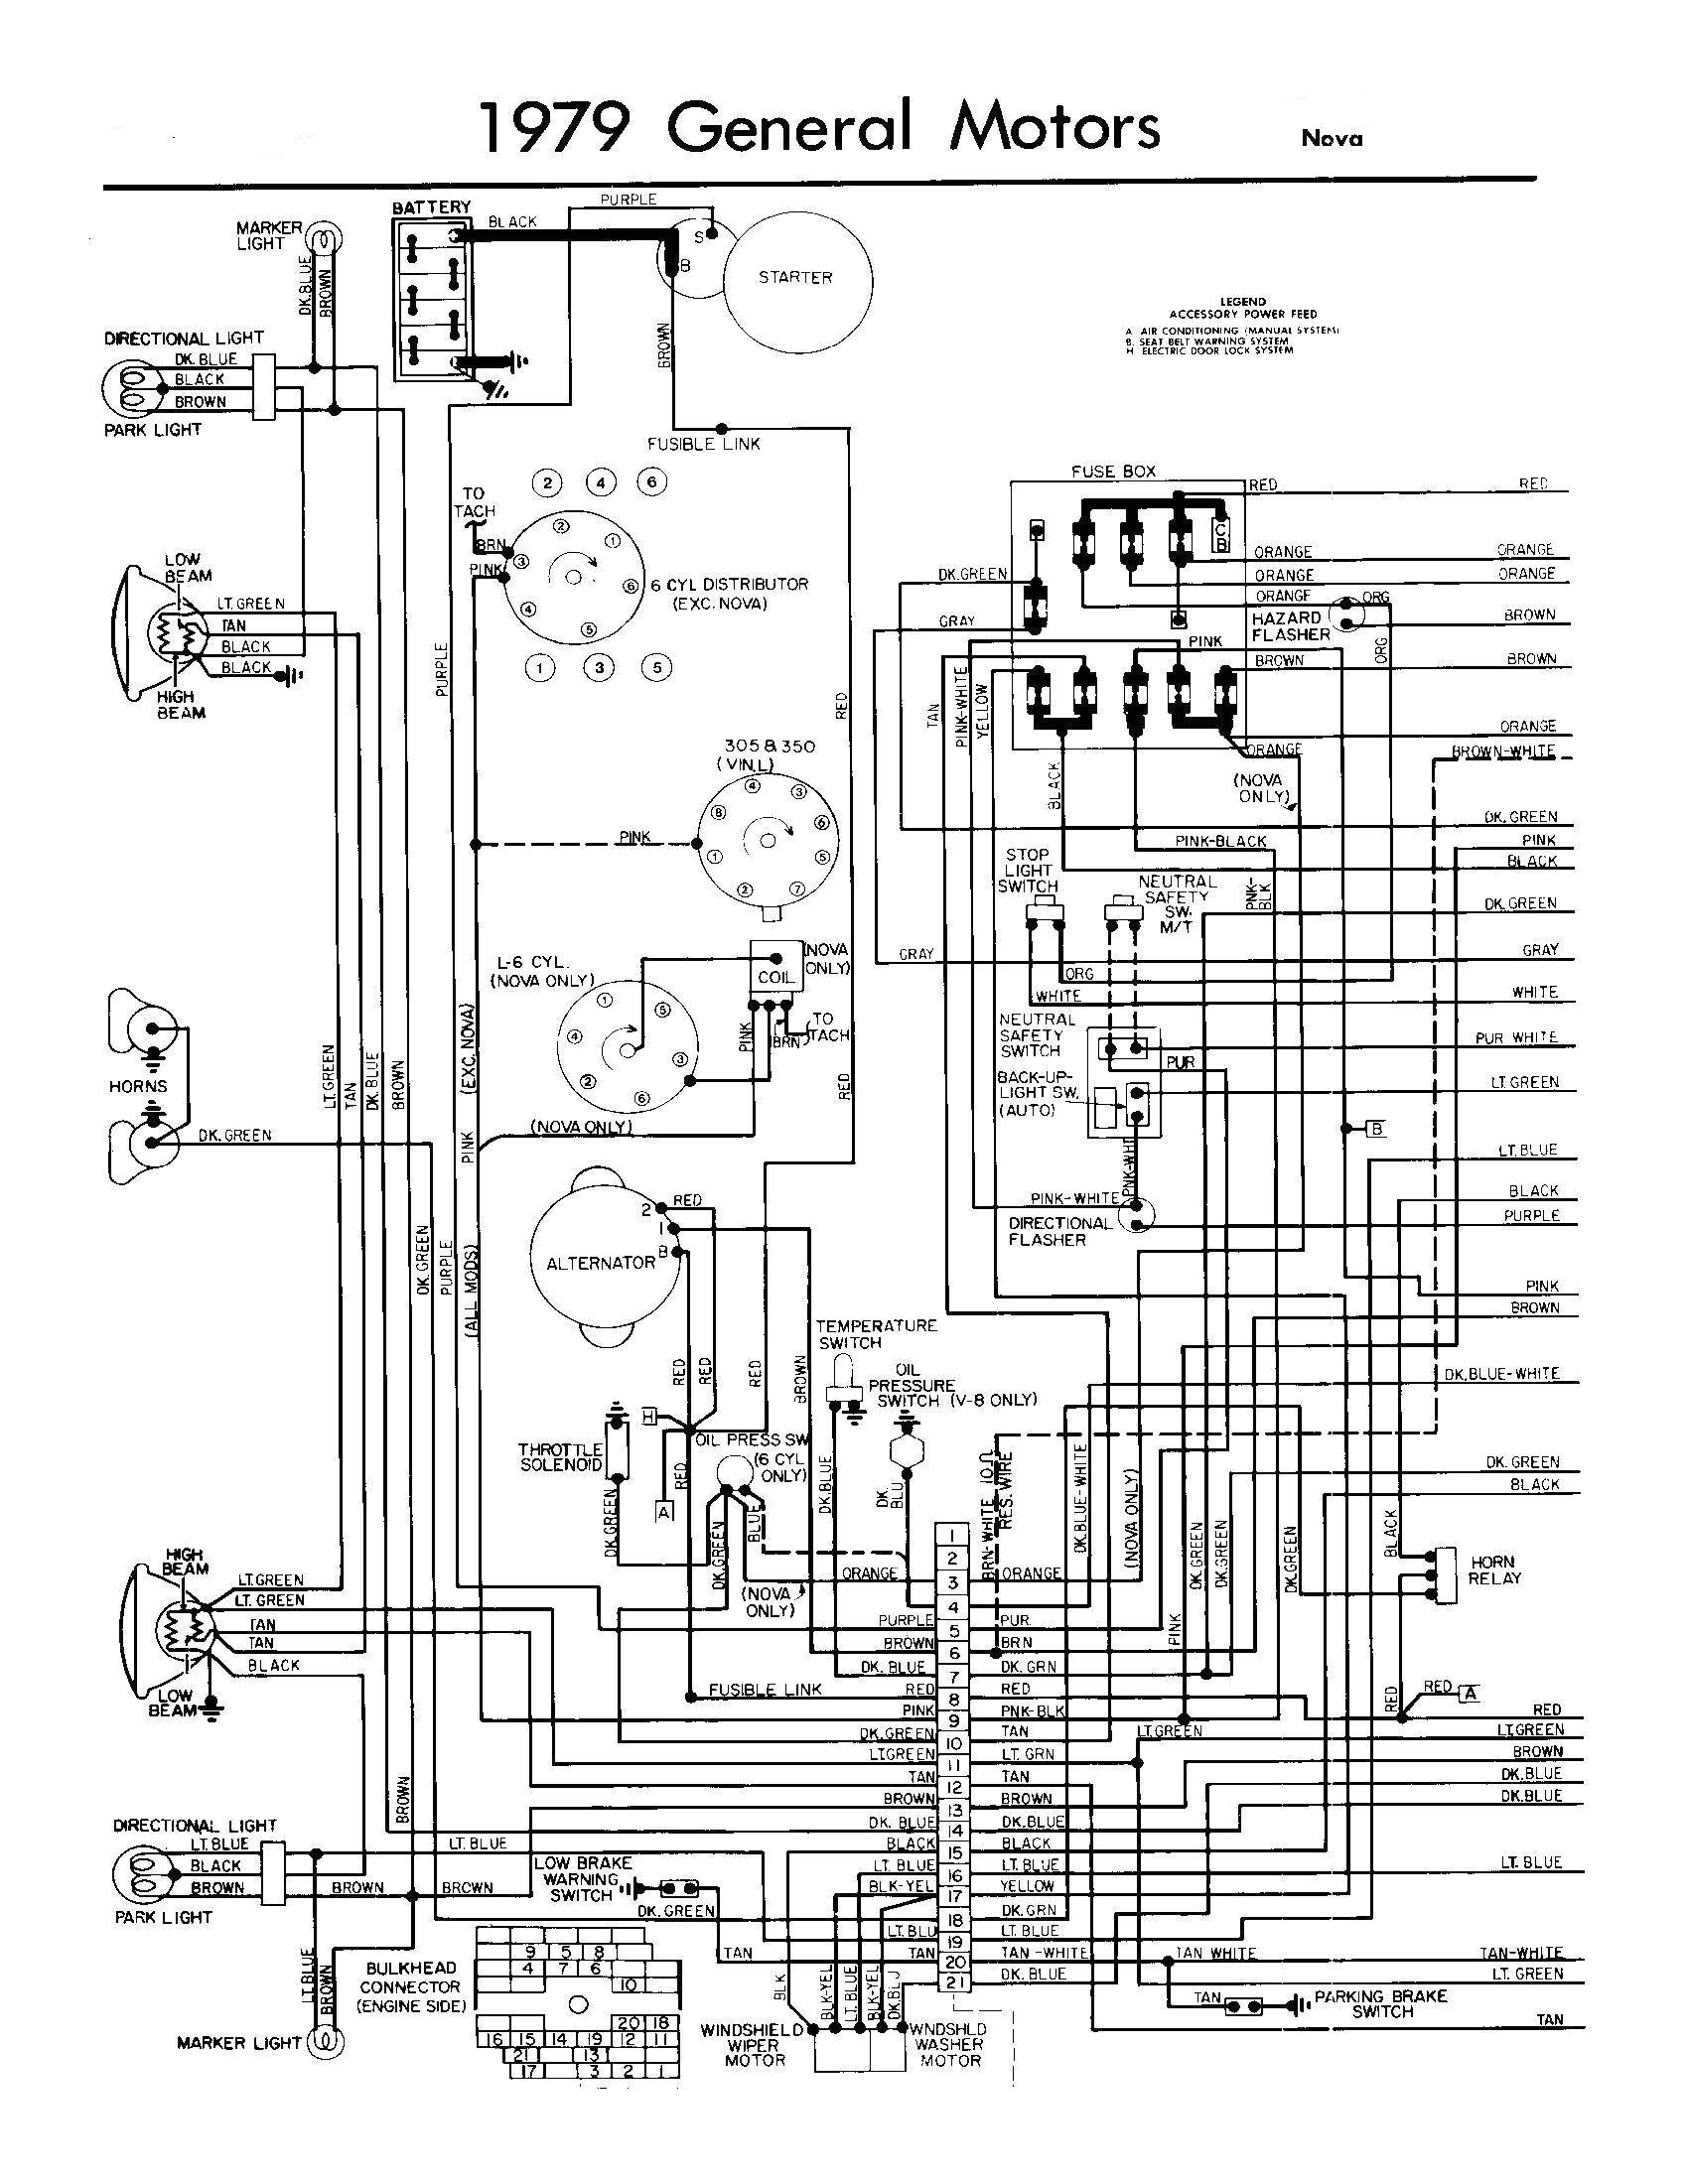 98 Camaro Wiring Diagram Wiring Diagram for 1984 Chevrolet Camaro Wiring Diagrams Posts